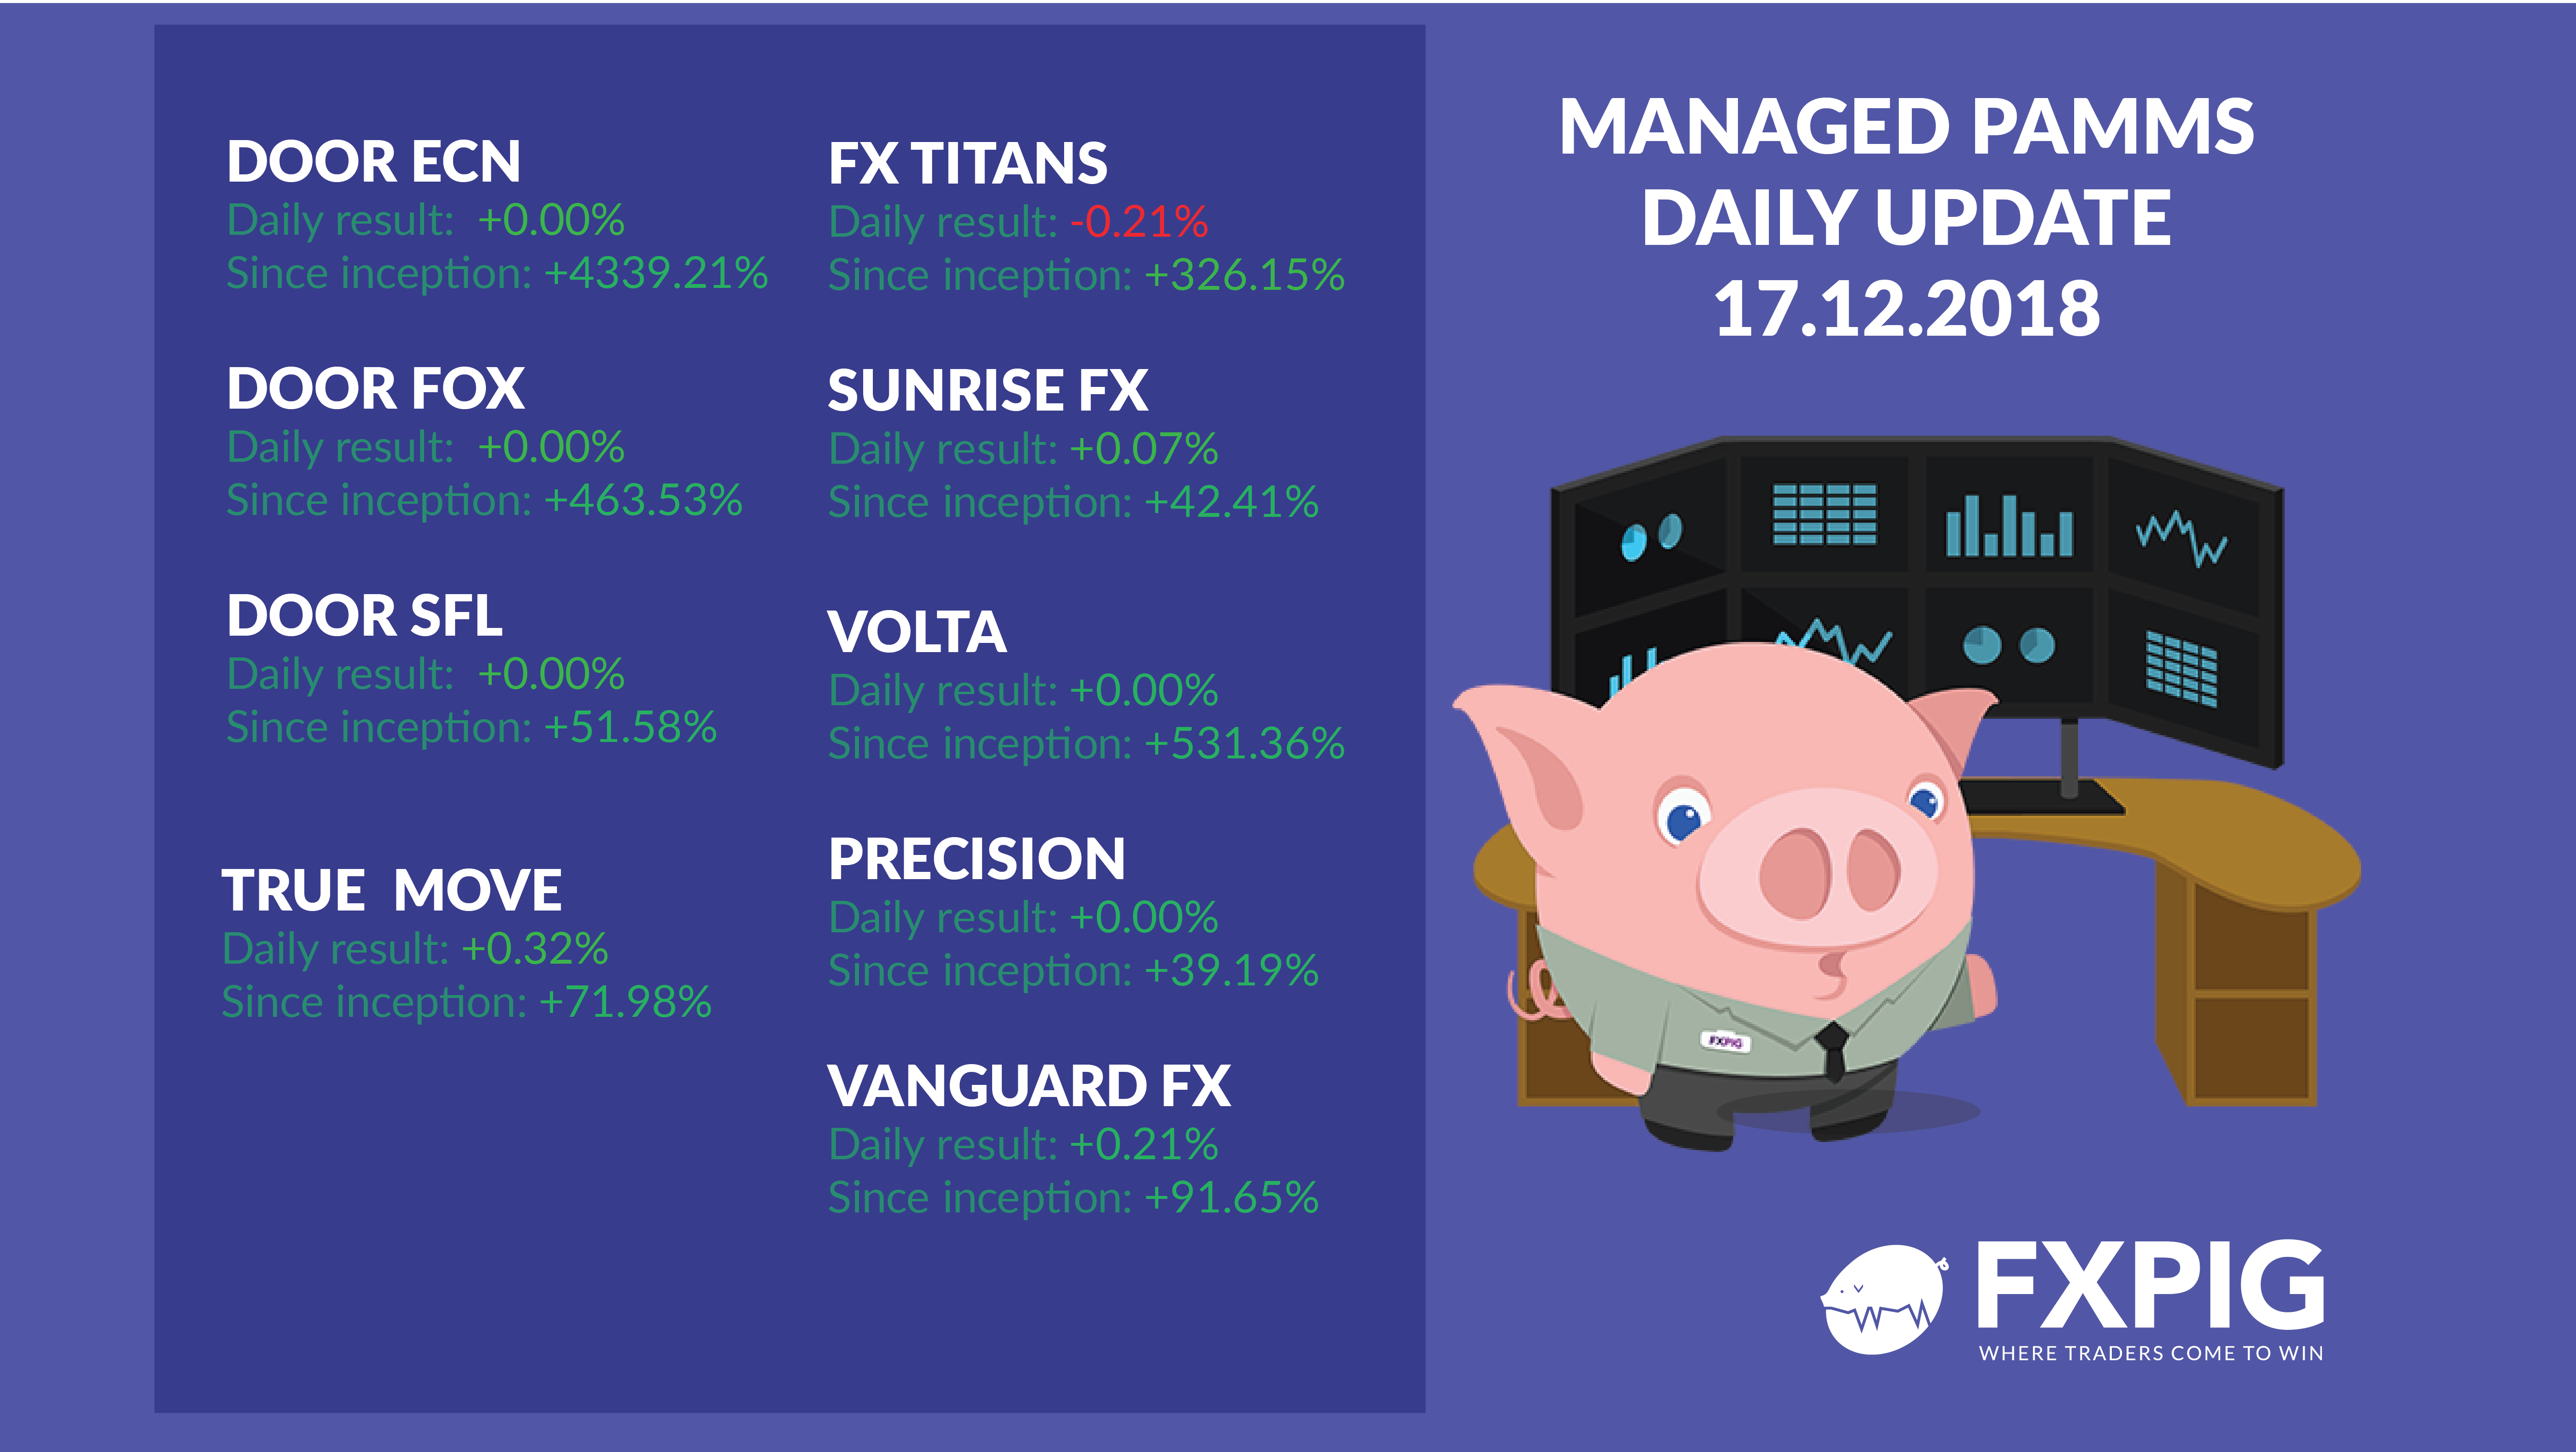 Forex_Trading_Fx_Trader_FXPIG_PAMMS_MANAGED_ACCOUNTS_PROFIT_17.12.2018